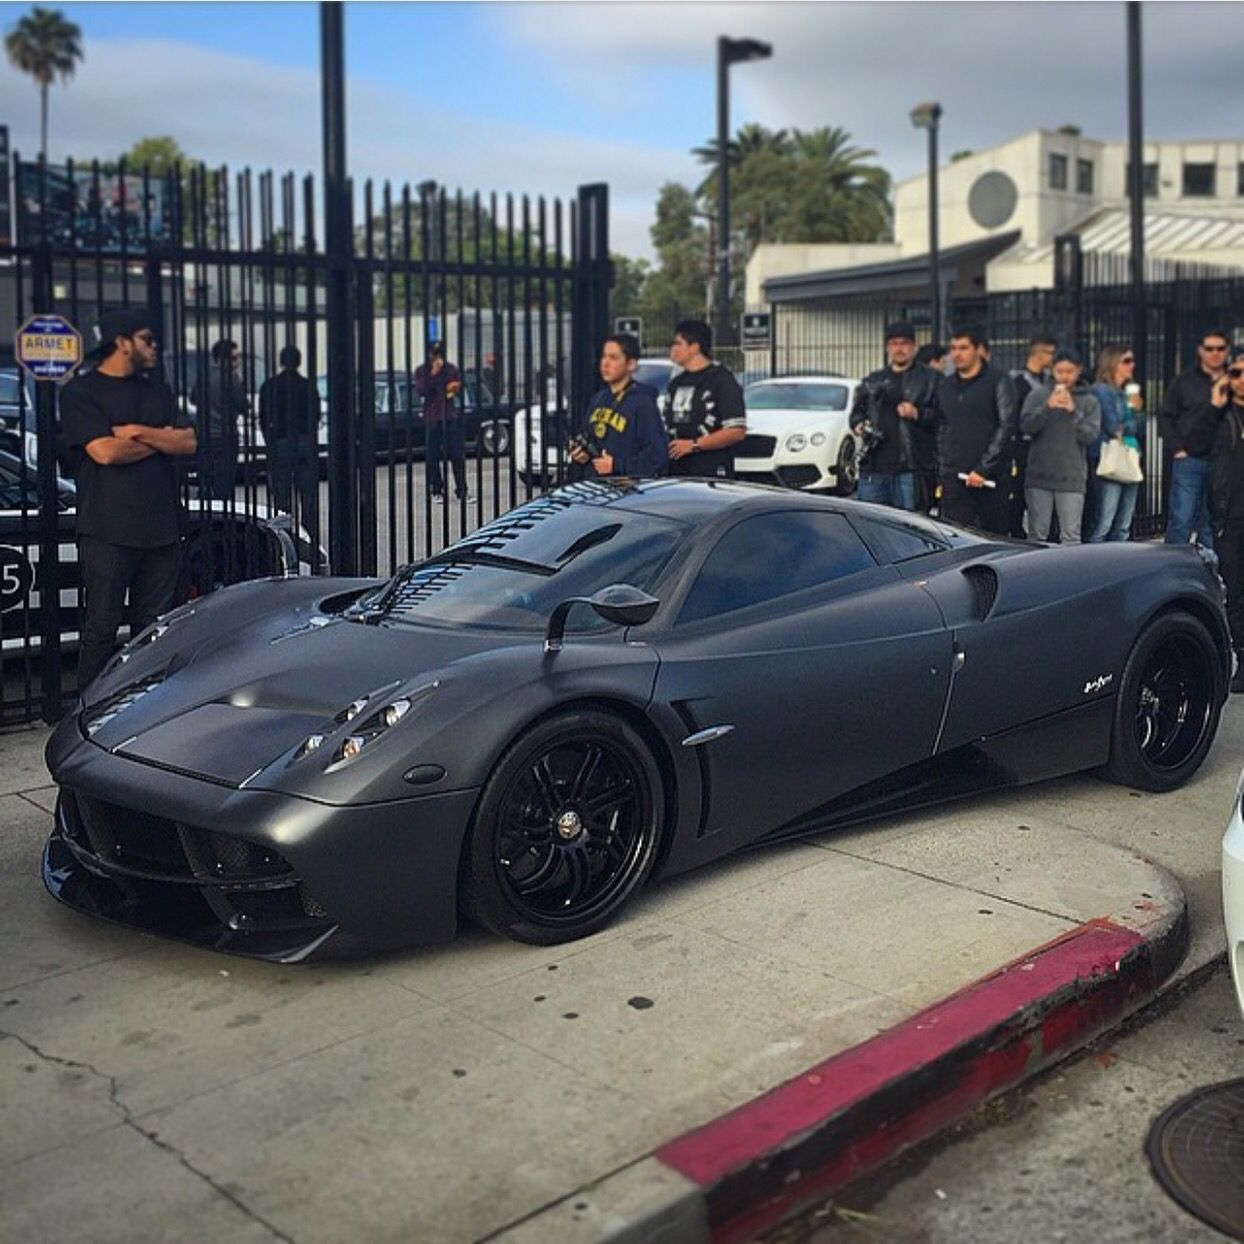 pagani huayra painted in matte black photo taken by: @socal_exotics